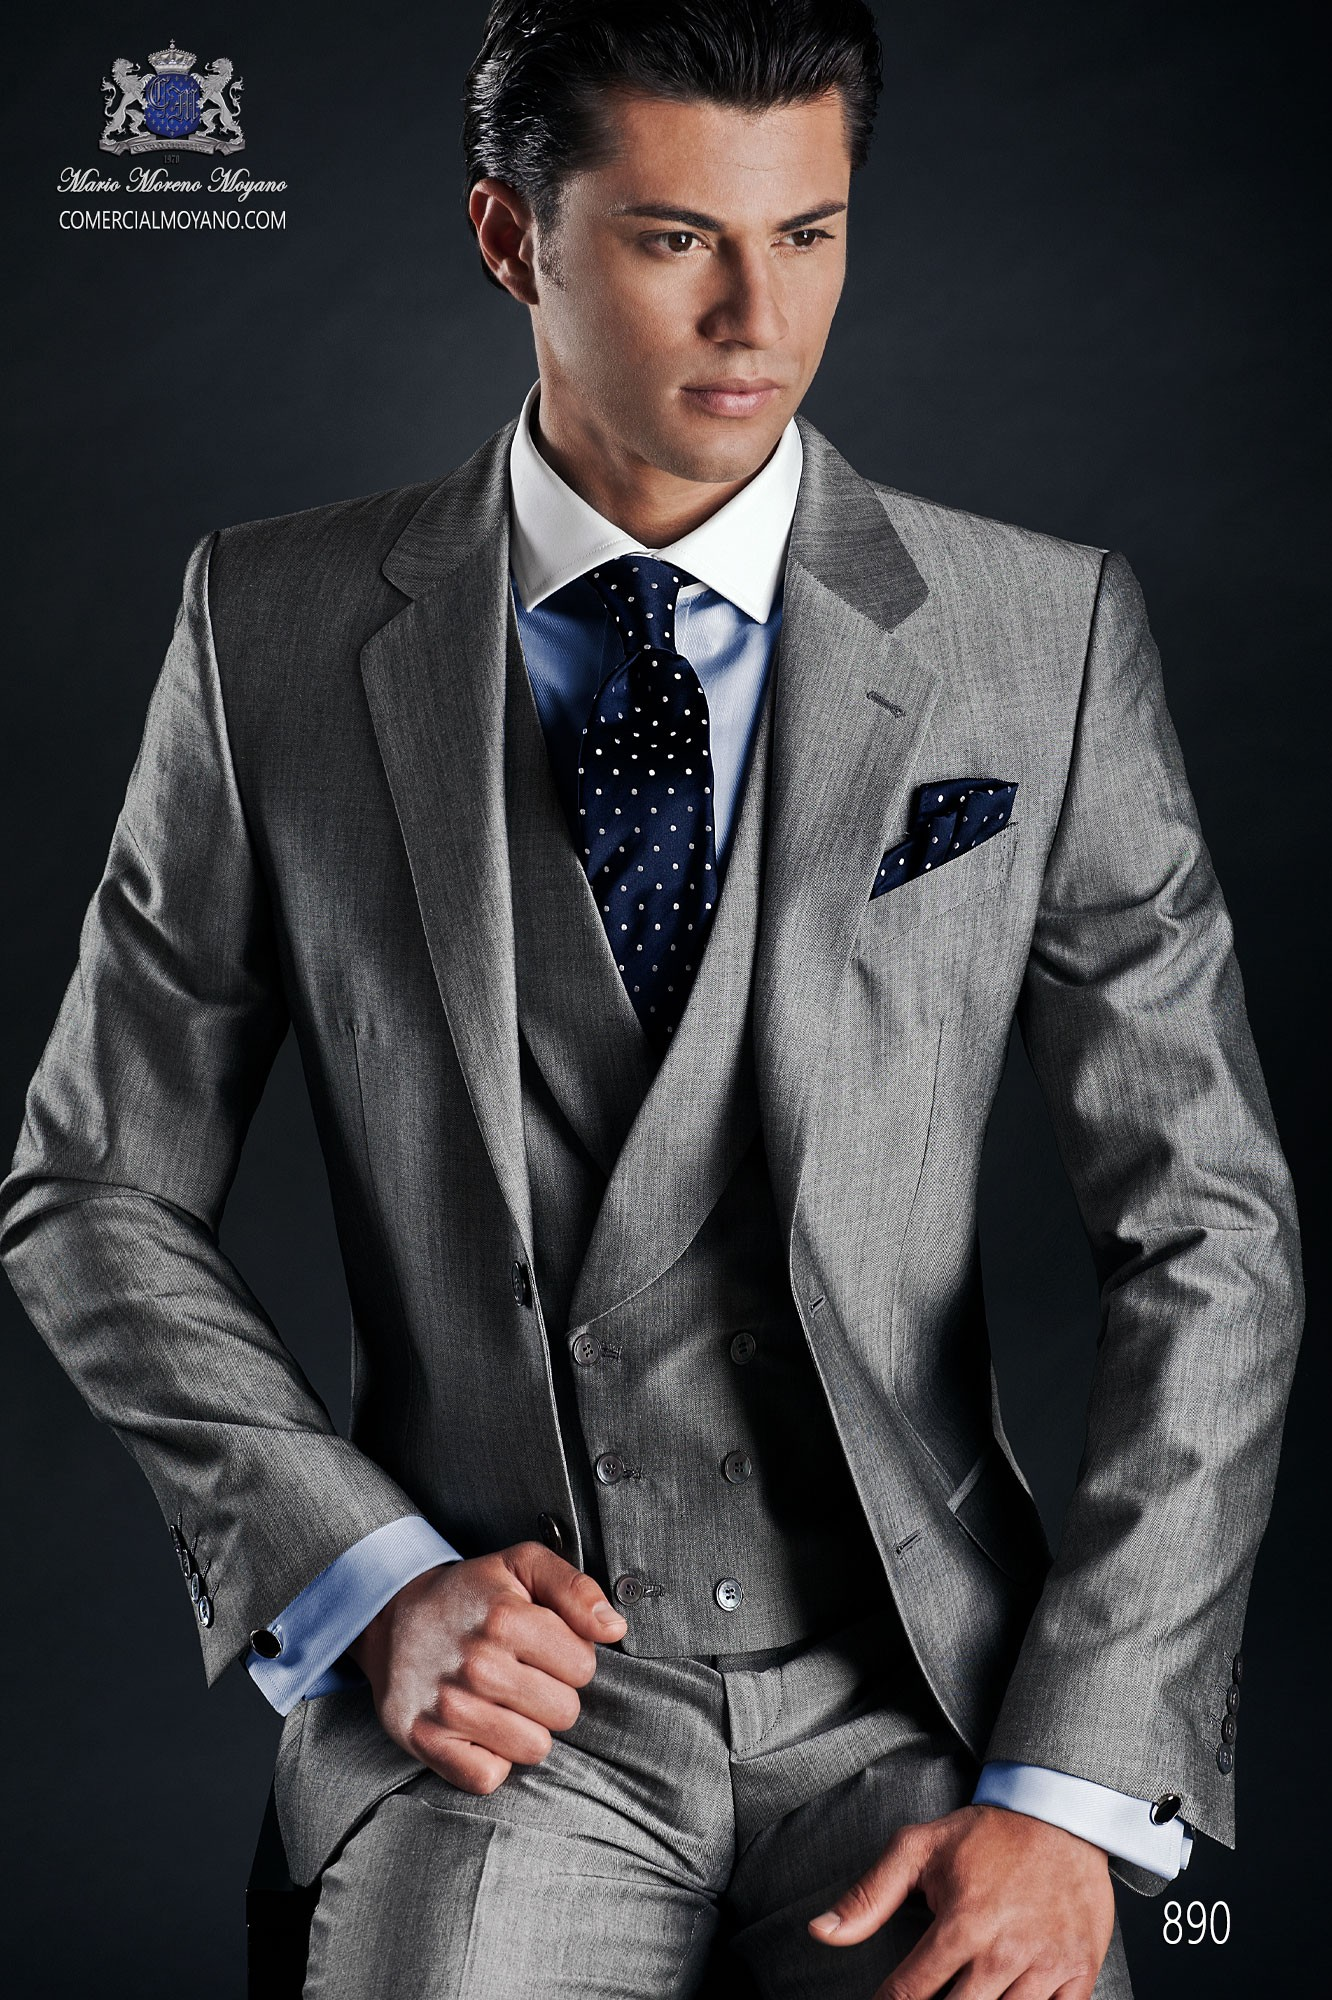 Gentleman grey men wedding suit model 890 Ottavio Nuccio Gala